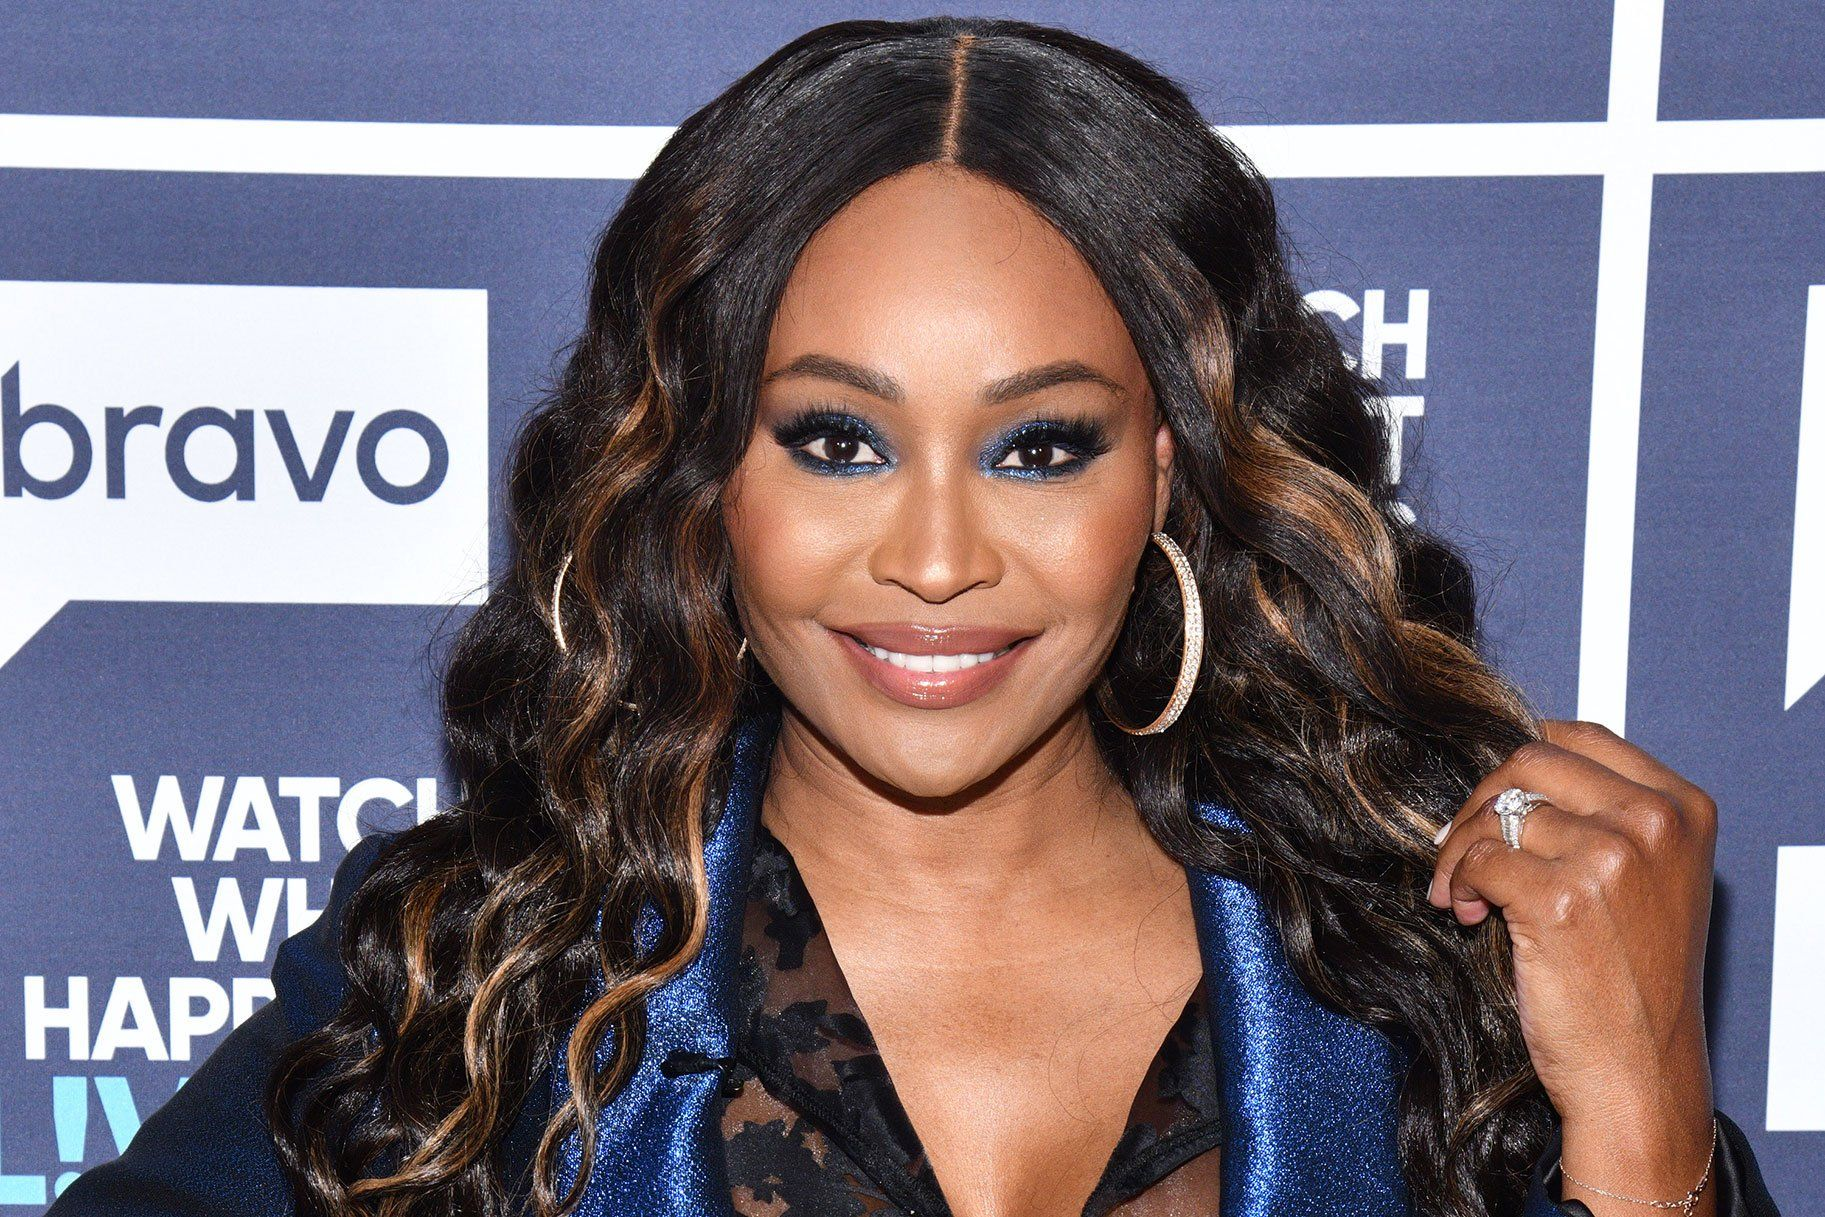 Cynthia Bailey Looks DropDead In This Photo